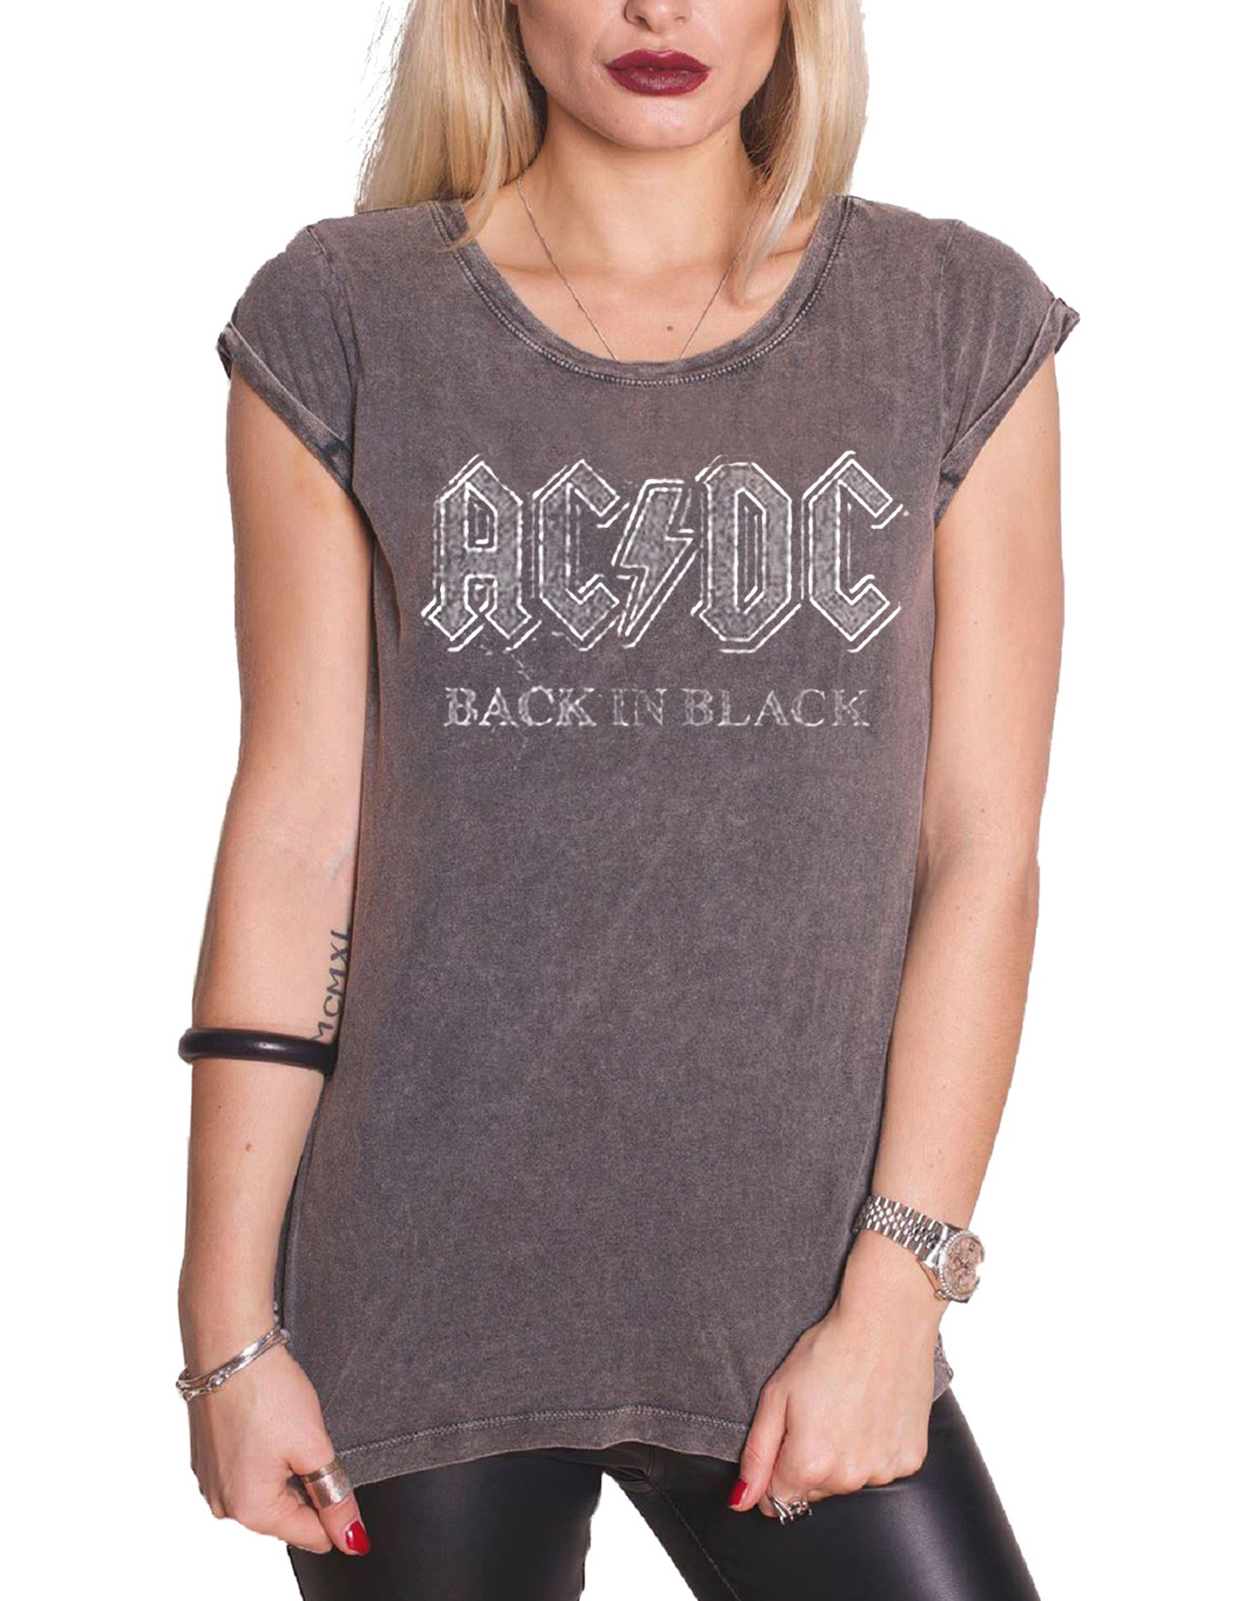 ac dc t shirt womens rock or bust band logo about to rock official skinny fit ebay. Black Bedroom Furniture Sets. Home Design Ideas